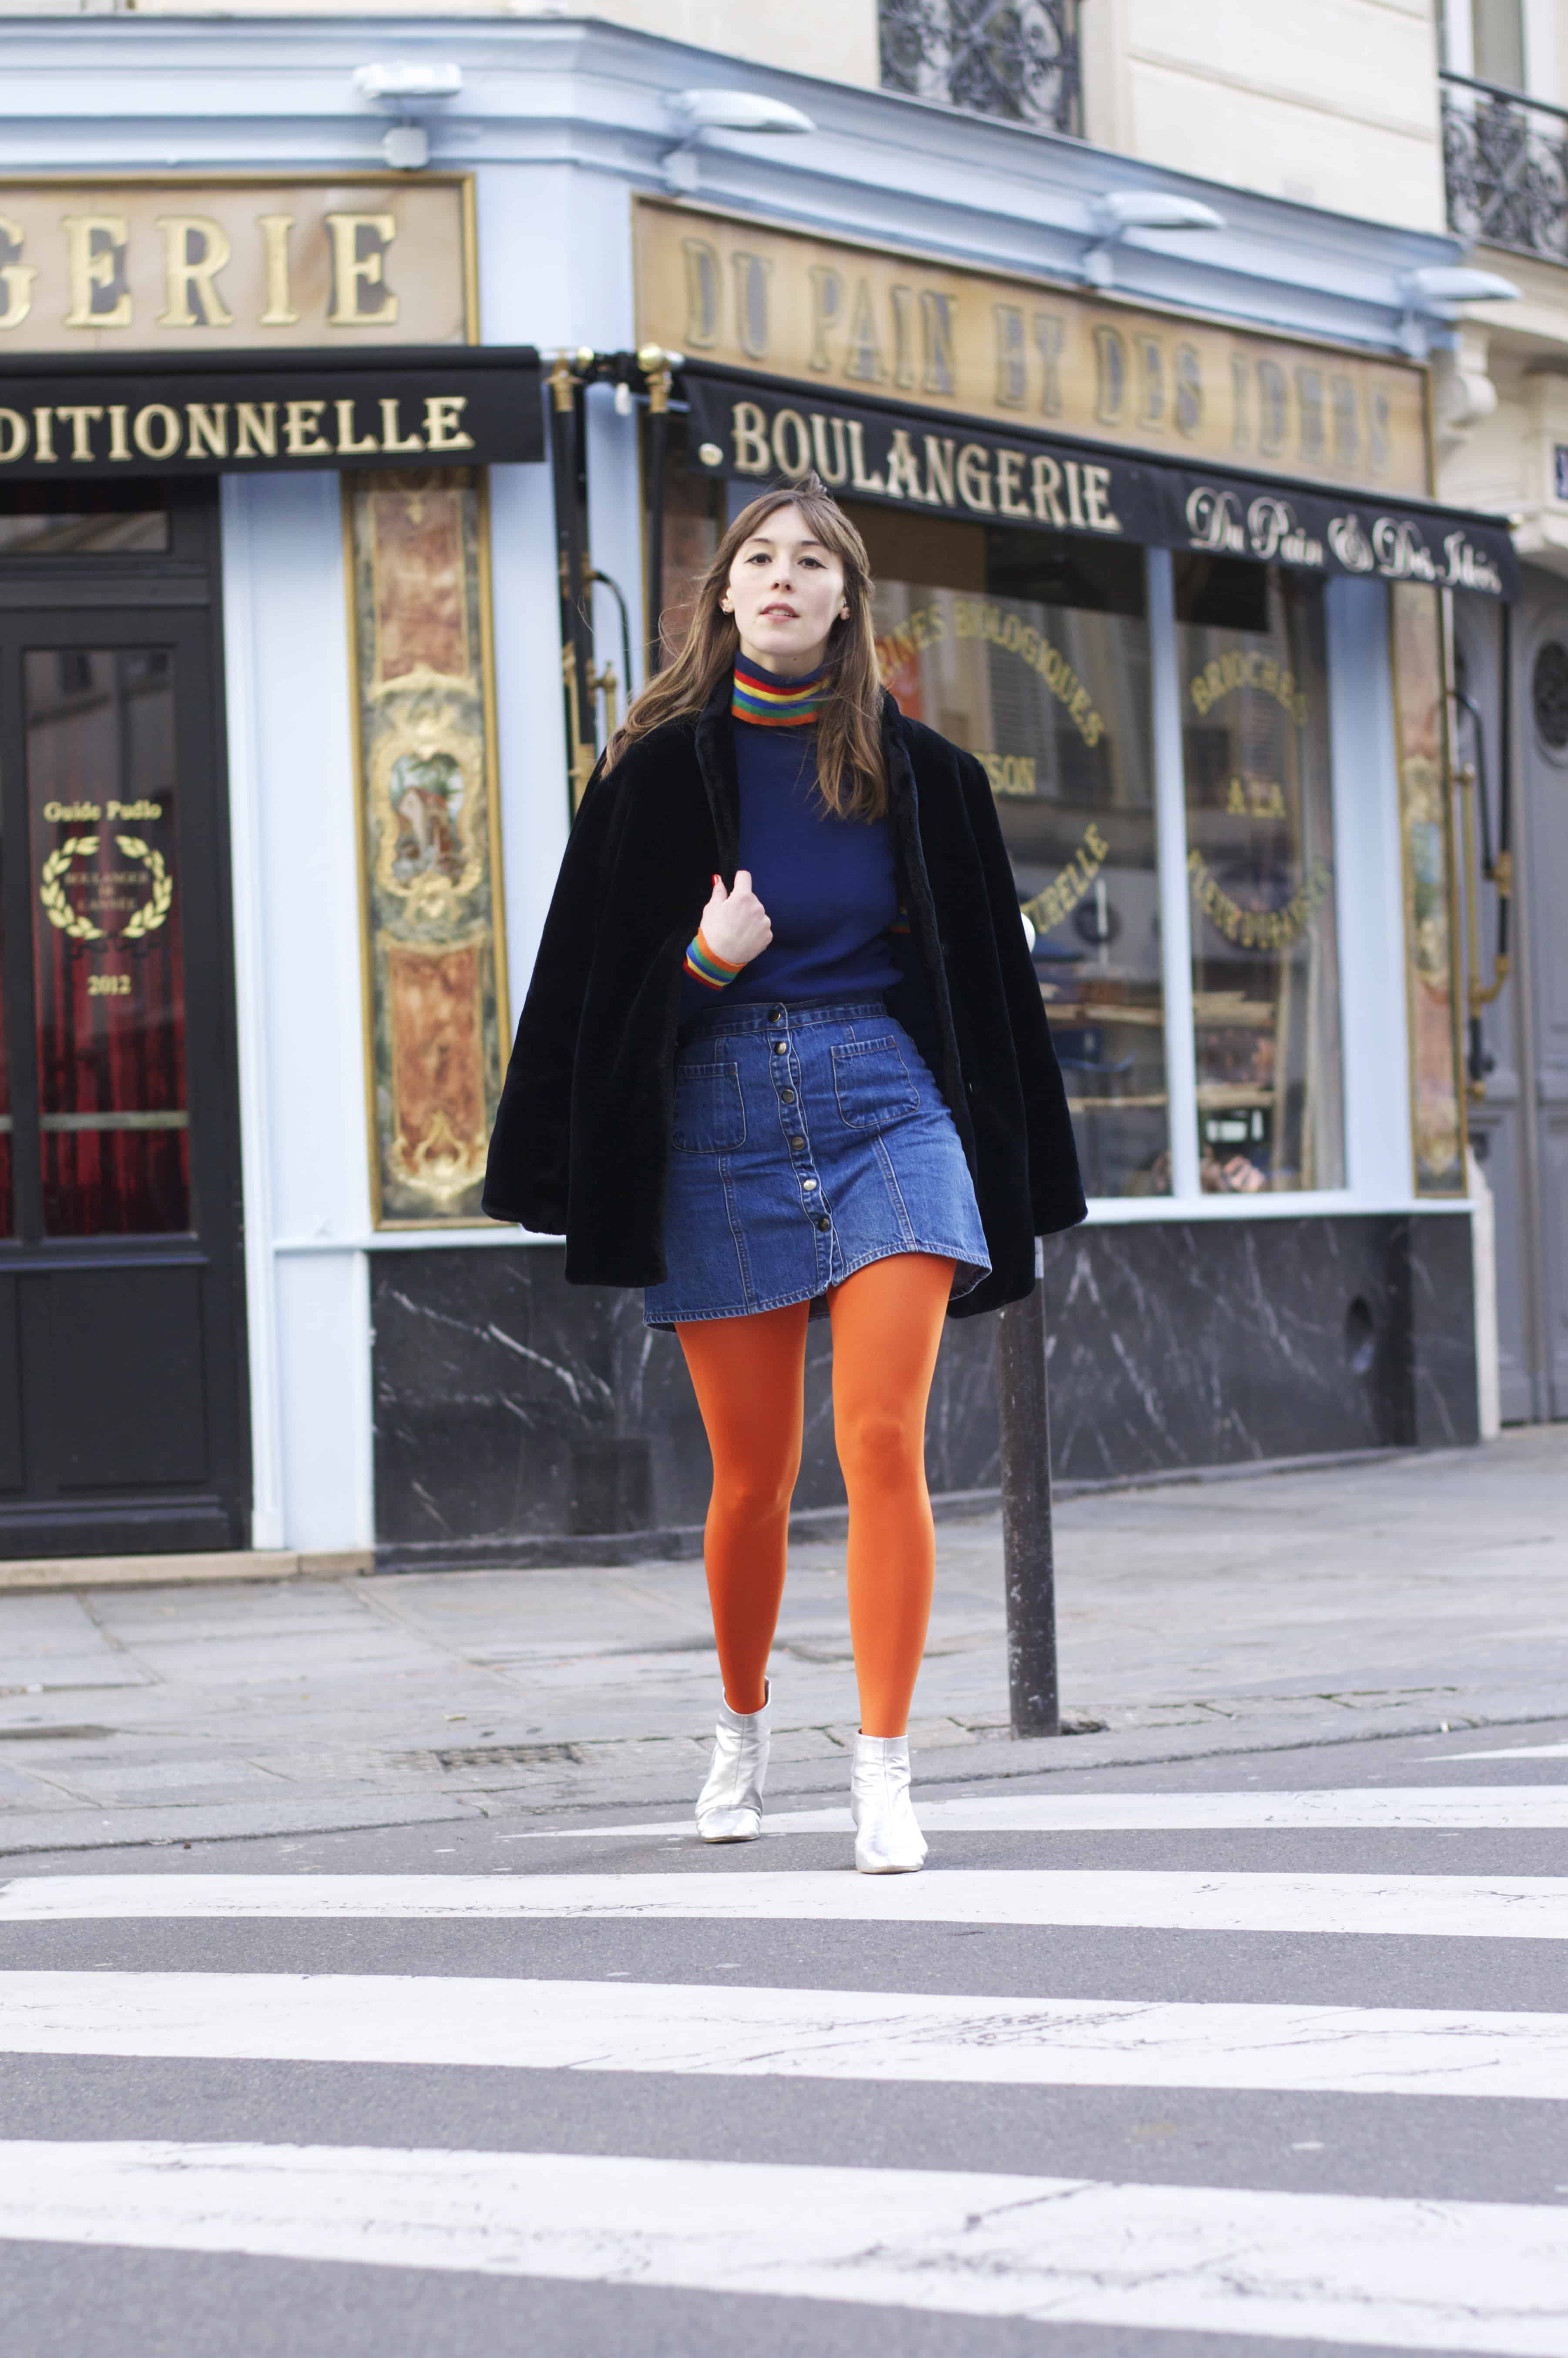 Being bold and confident wearing bold orange tights in Paris